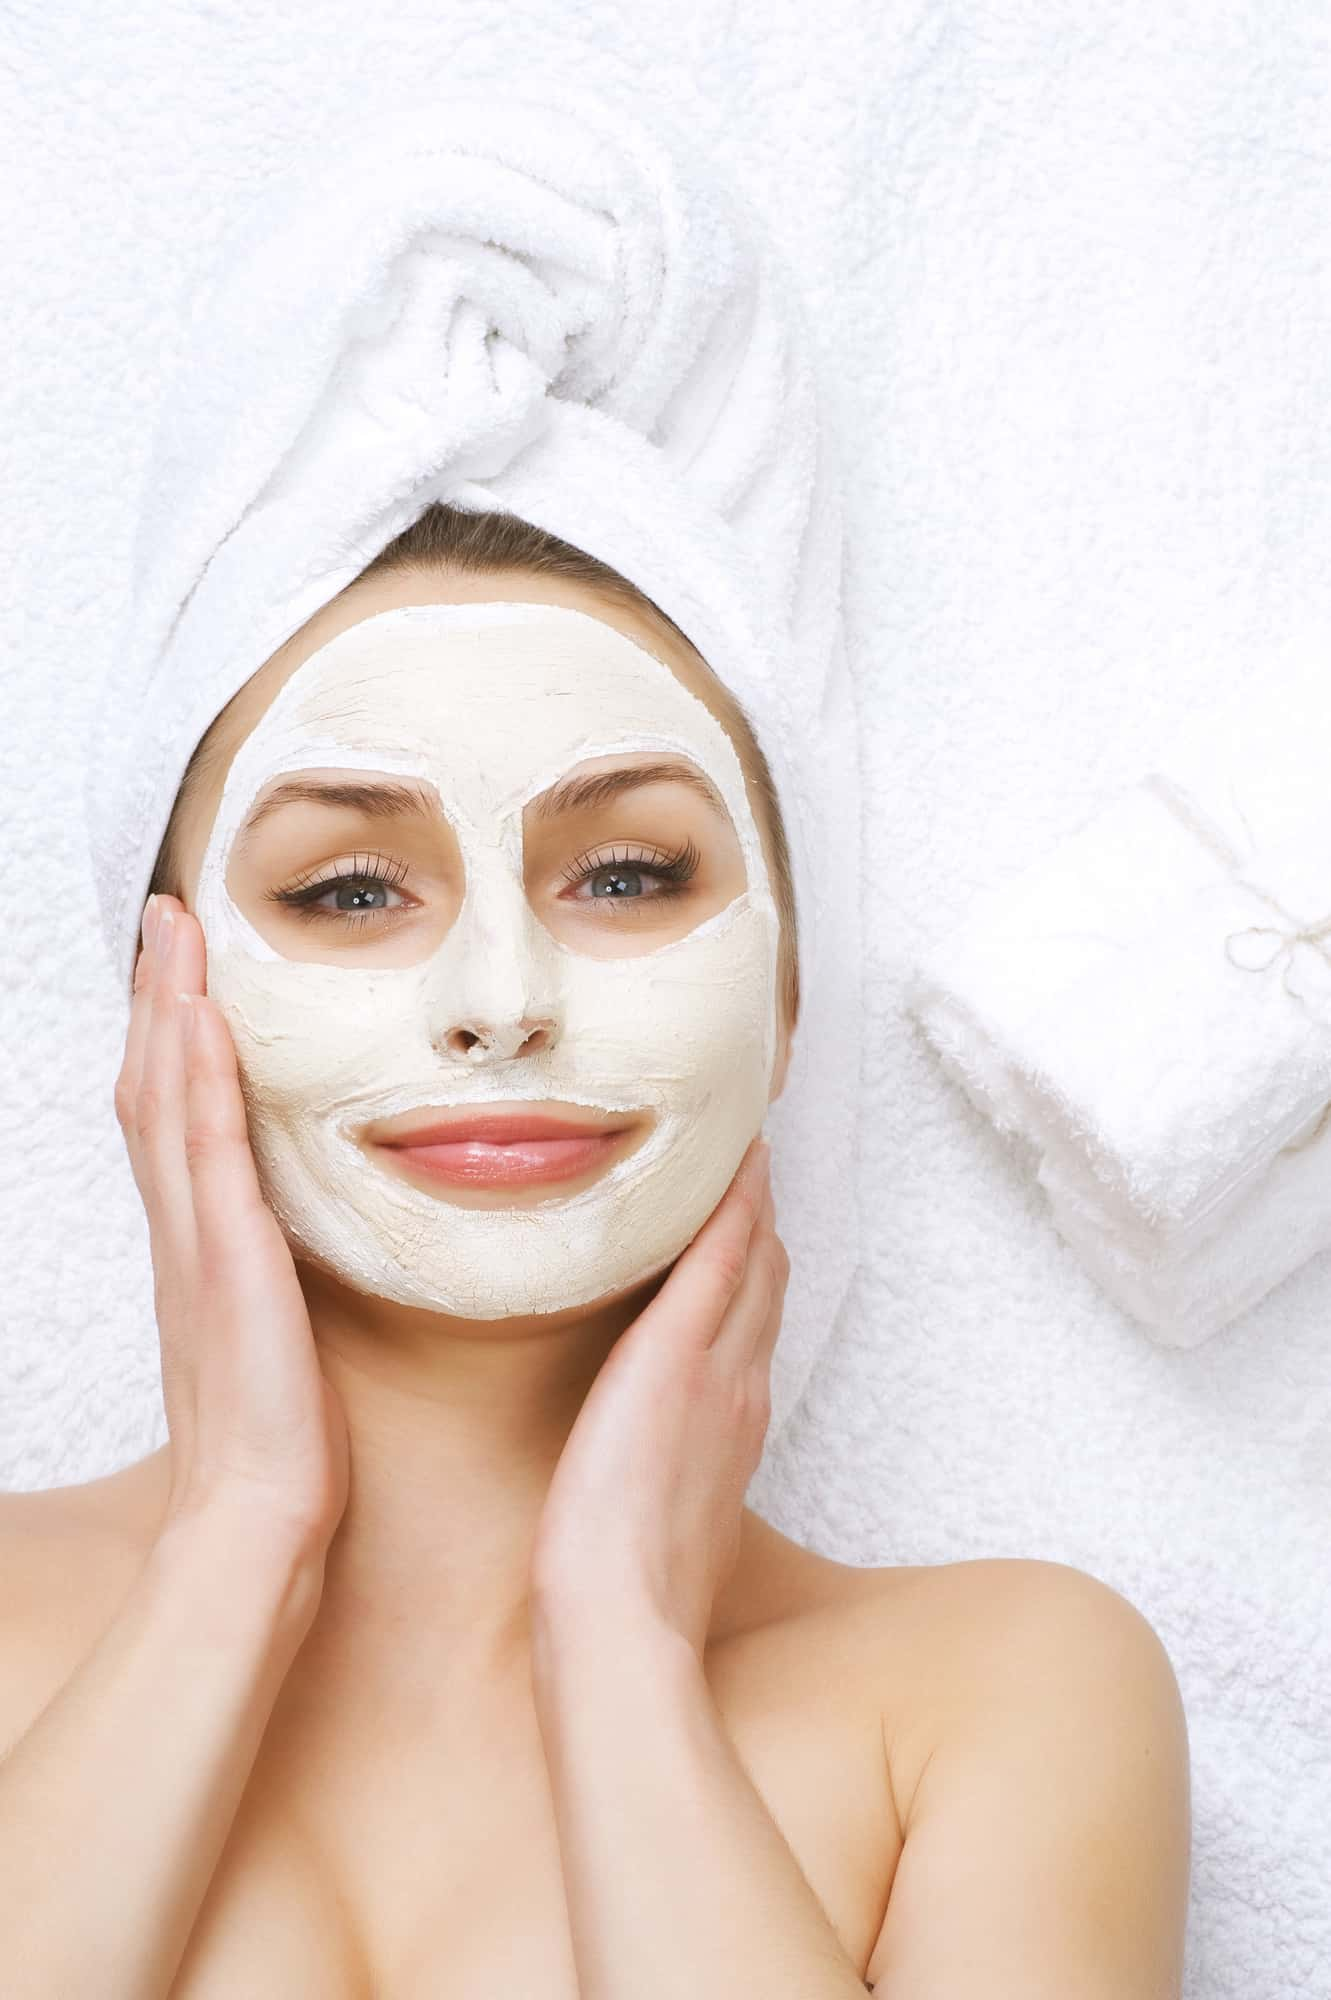 10 Simple Diy Face Masks For Healthy Glowing Skin